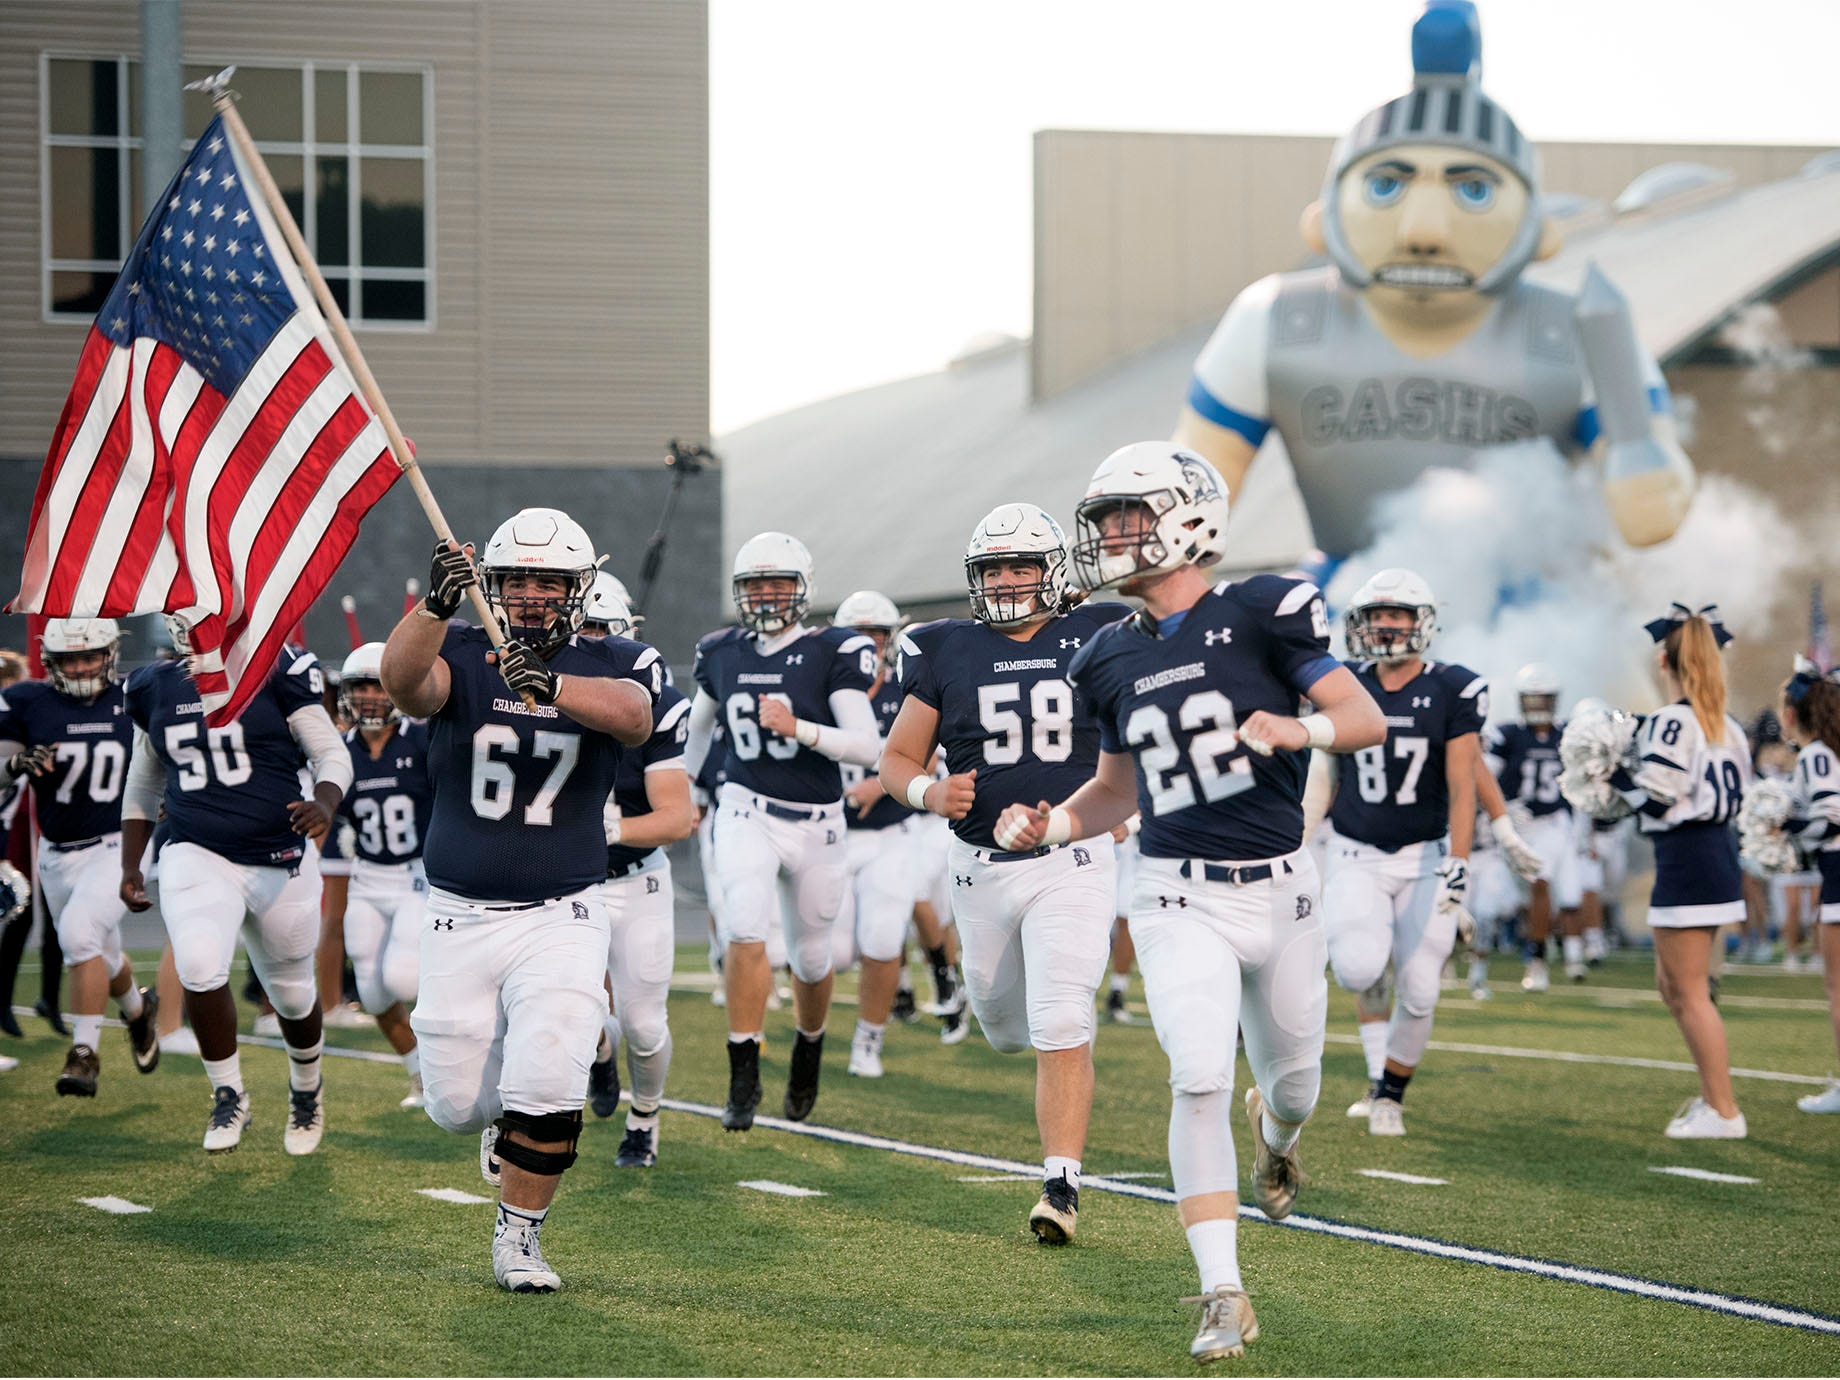 Chambersburg Trojans run onto the field. Chambersburg Trojans are 5-1 after a homecoming victory over Cumberland Valley 28-14 in PIAA football on Friday, Sept. 28, 2018.